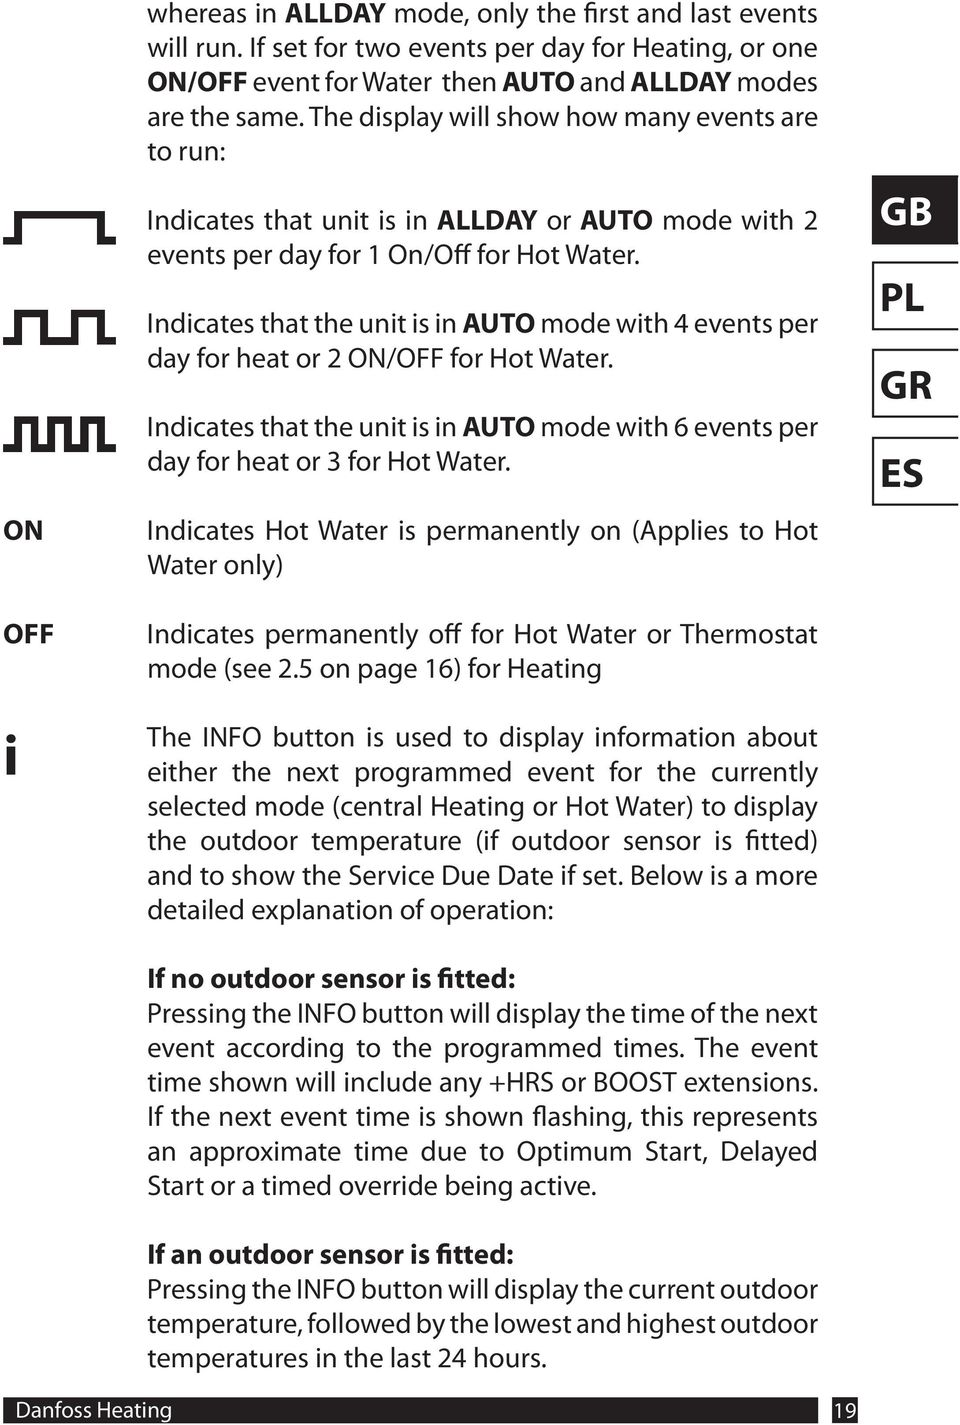 Indicates that the unit is in AUTO mode with 4 events per day for heat or 2 ON/OFF for Hot Water. Indicates that the unit is in AUTO mode with 6 events per day for heat or 3 for Hot Water.